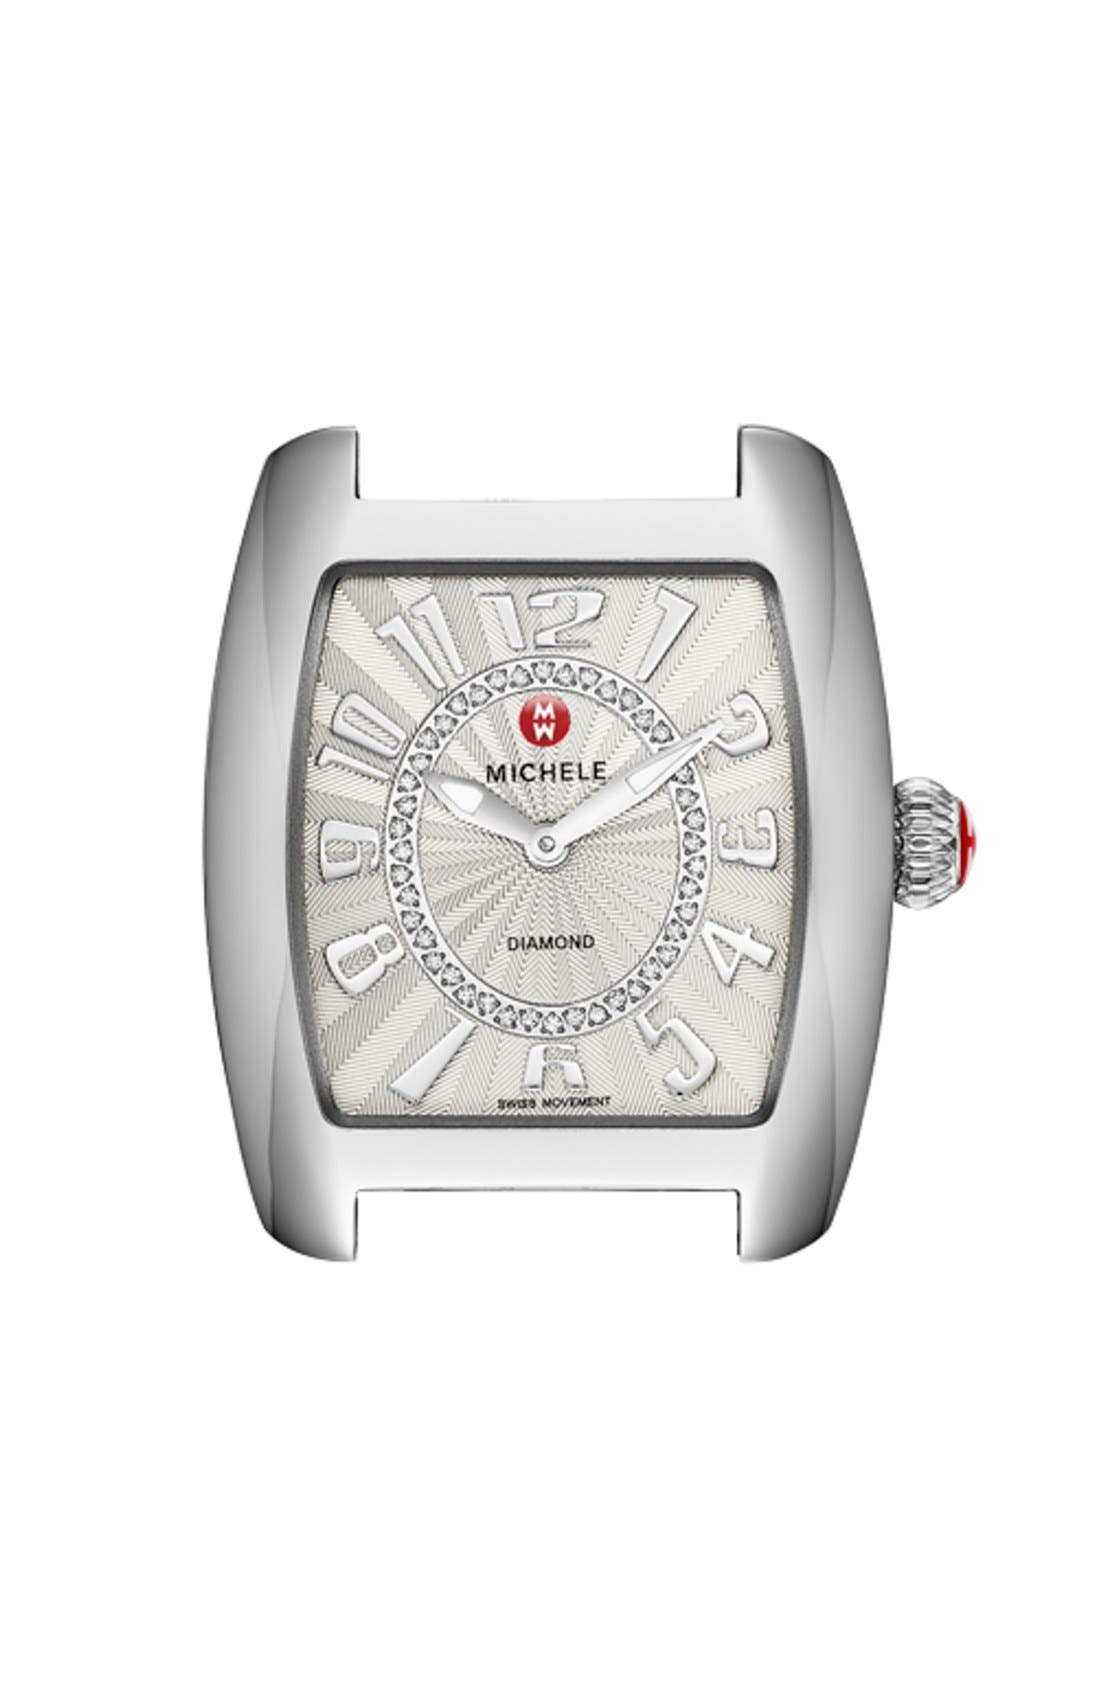 Alternate Image 1 Selected - MICHELE Urban Mini Diamond Dial Watch Case, 29mm x 30mm